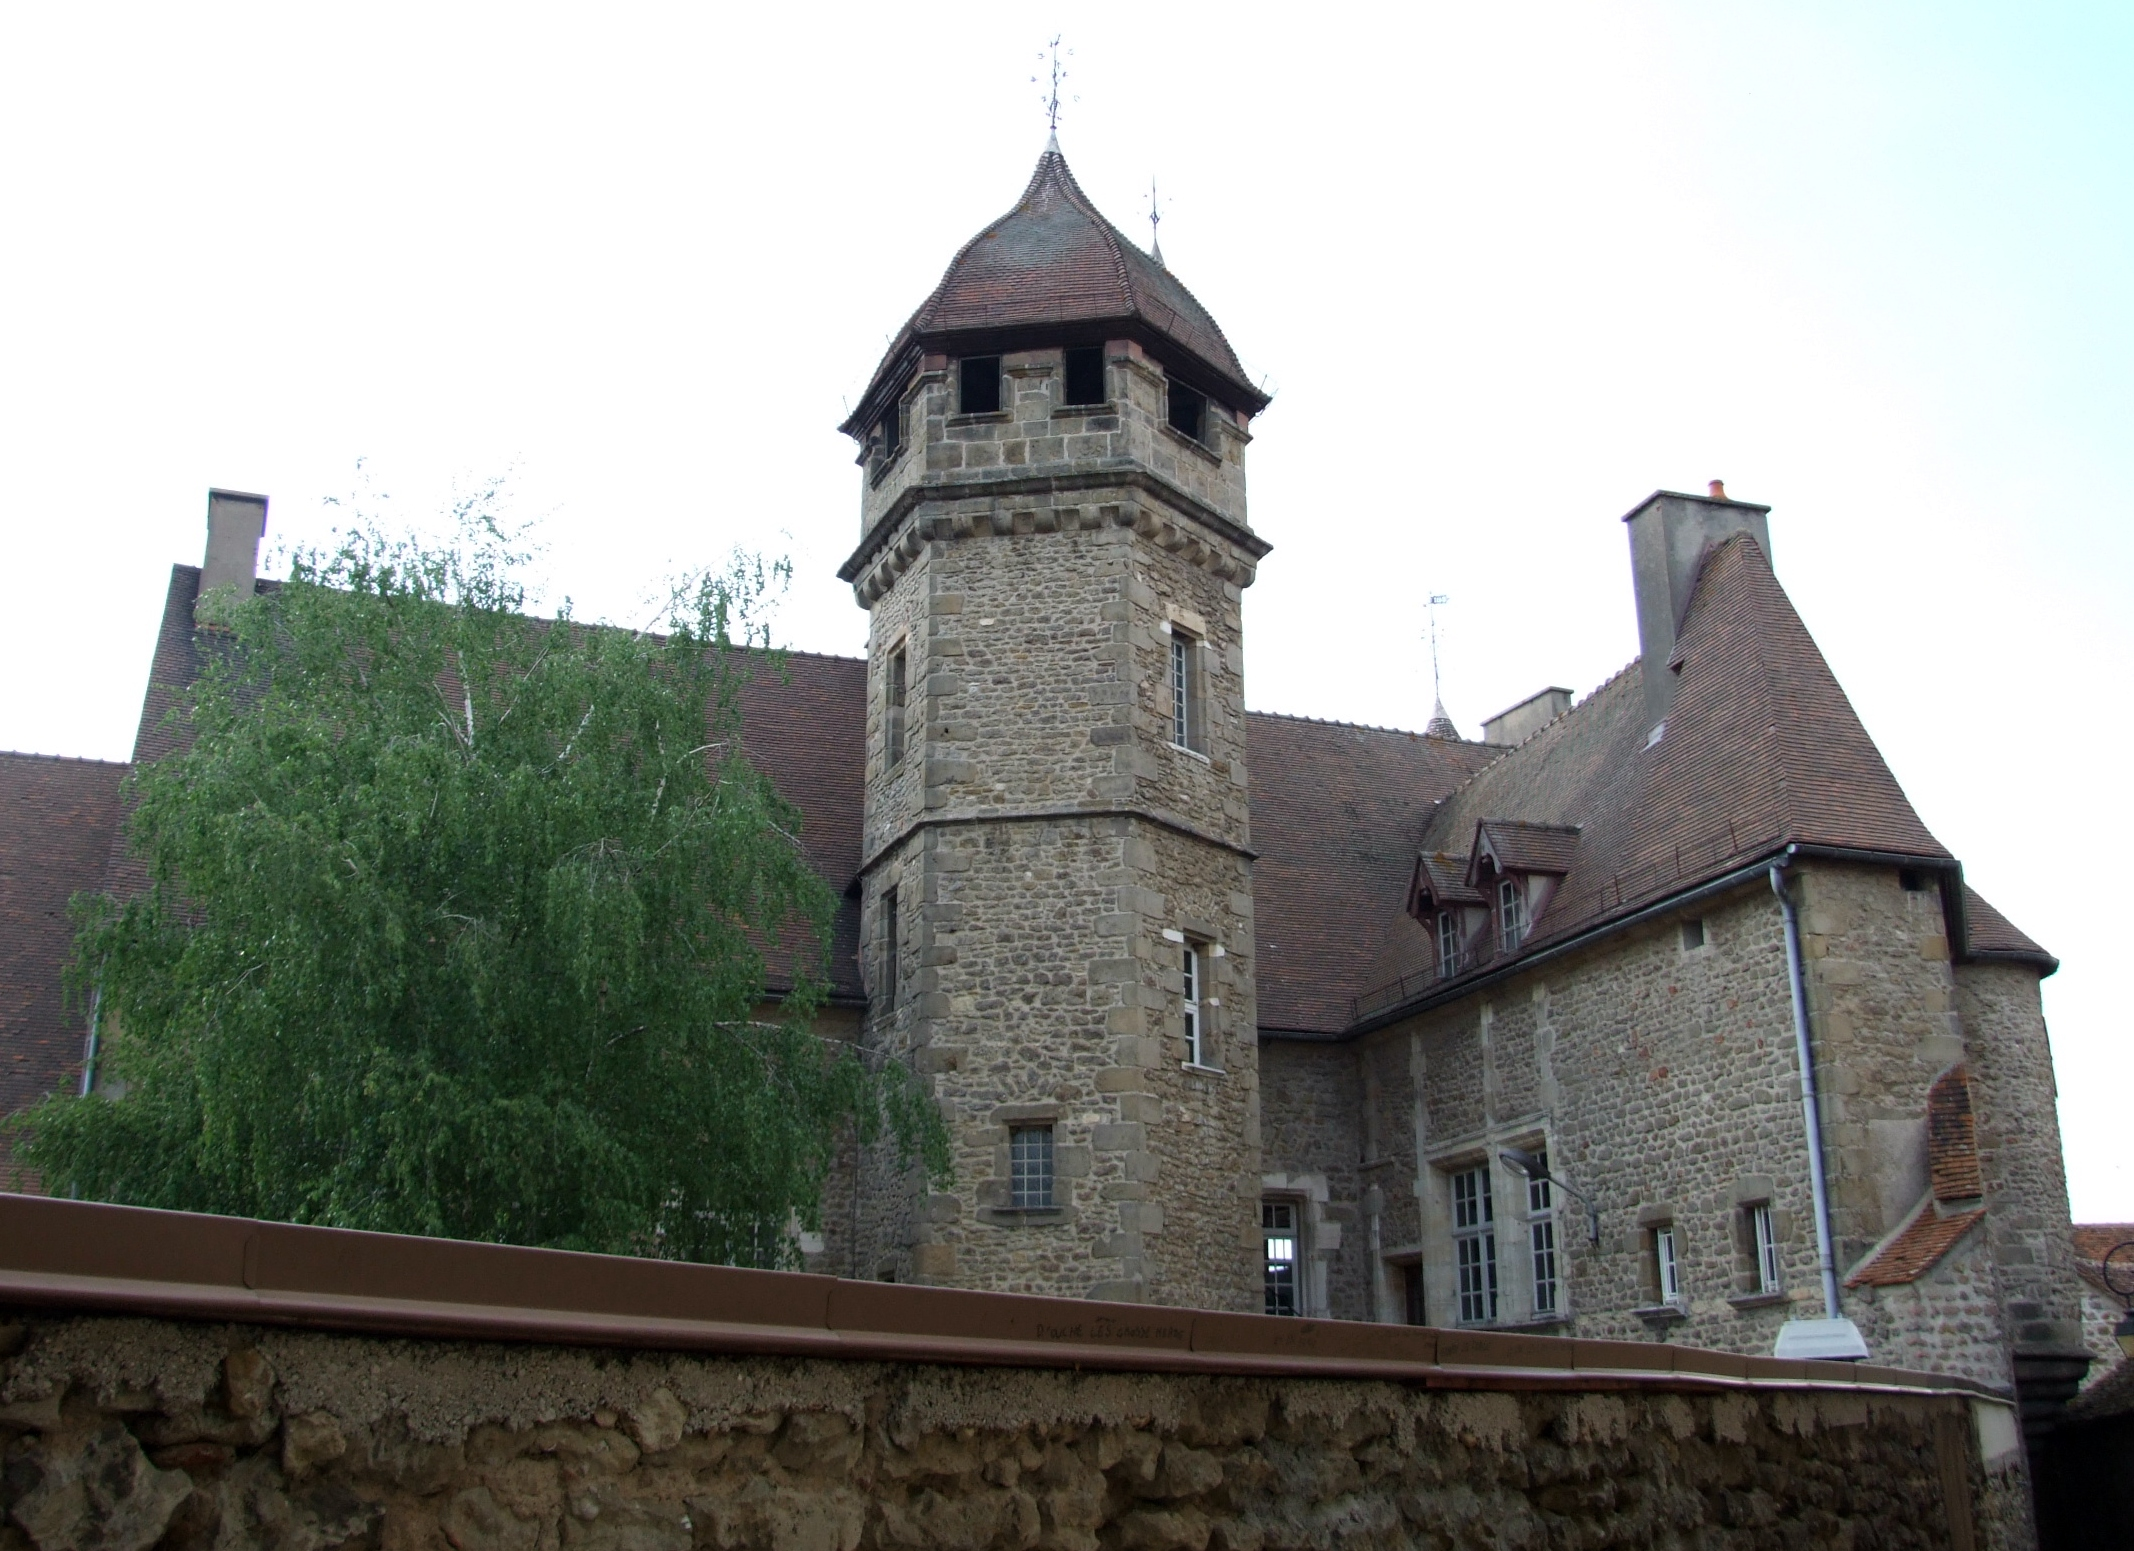 Arnay France  city pictures gallery : Arnay le duc Chateau Princes de Conde 1 Wikimedia Commons